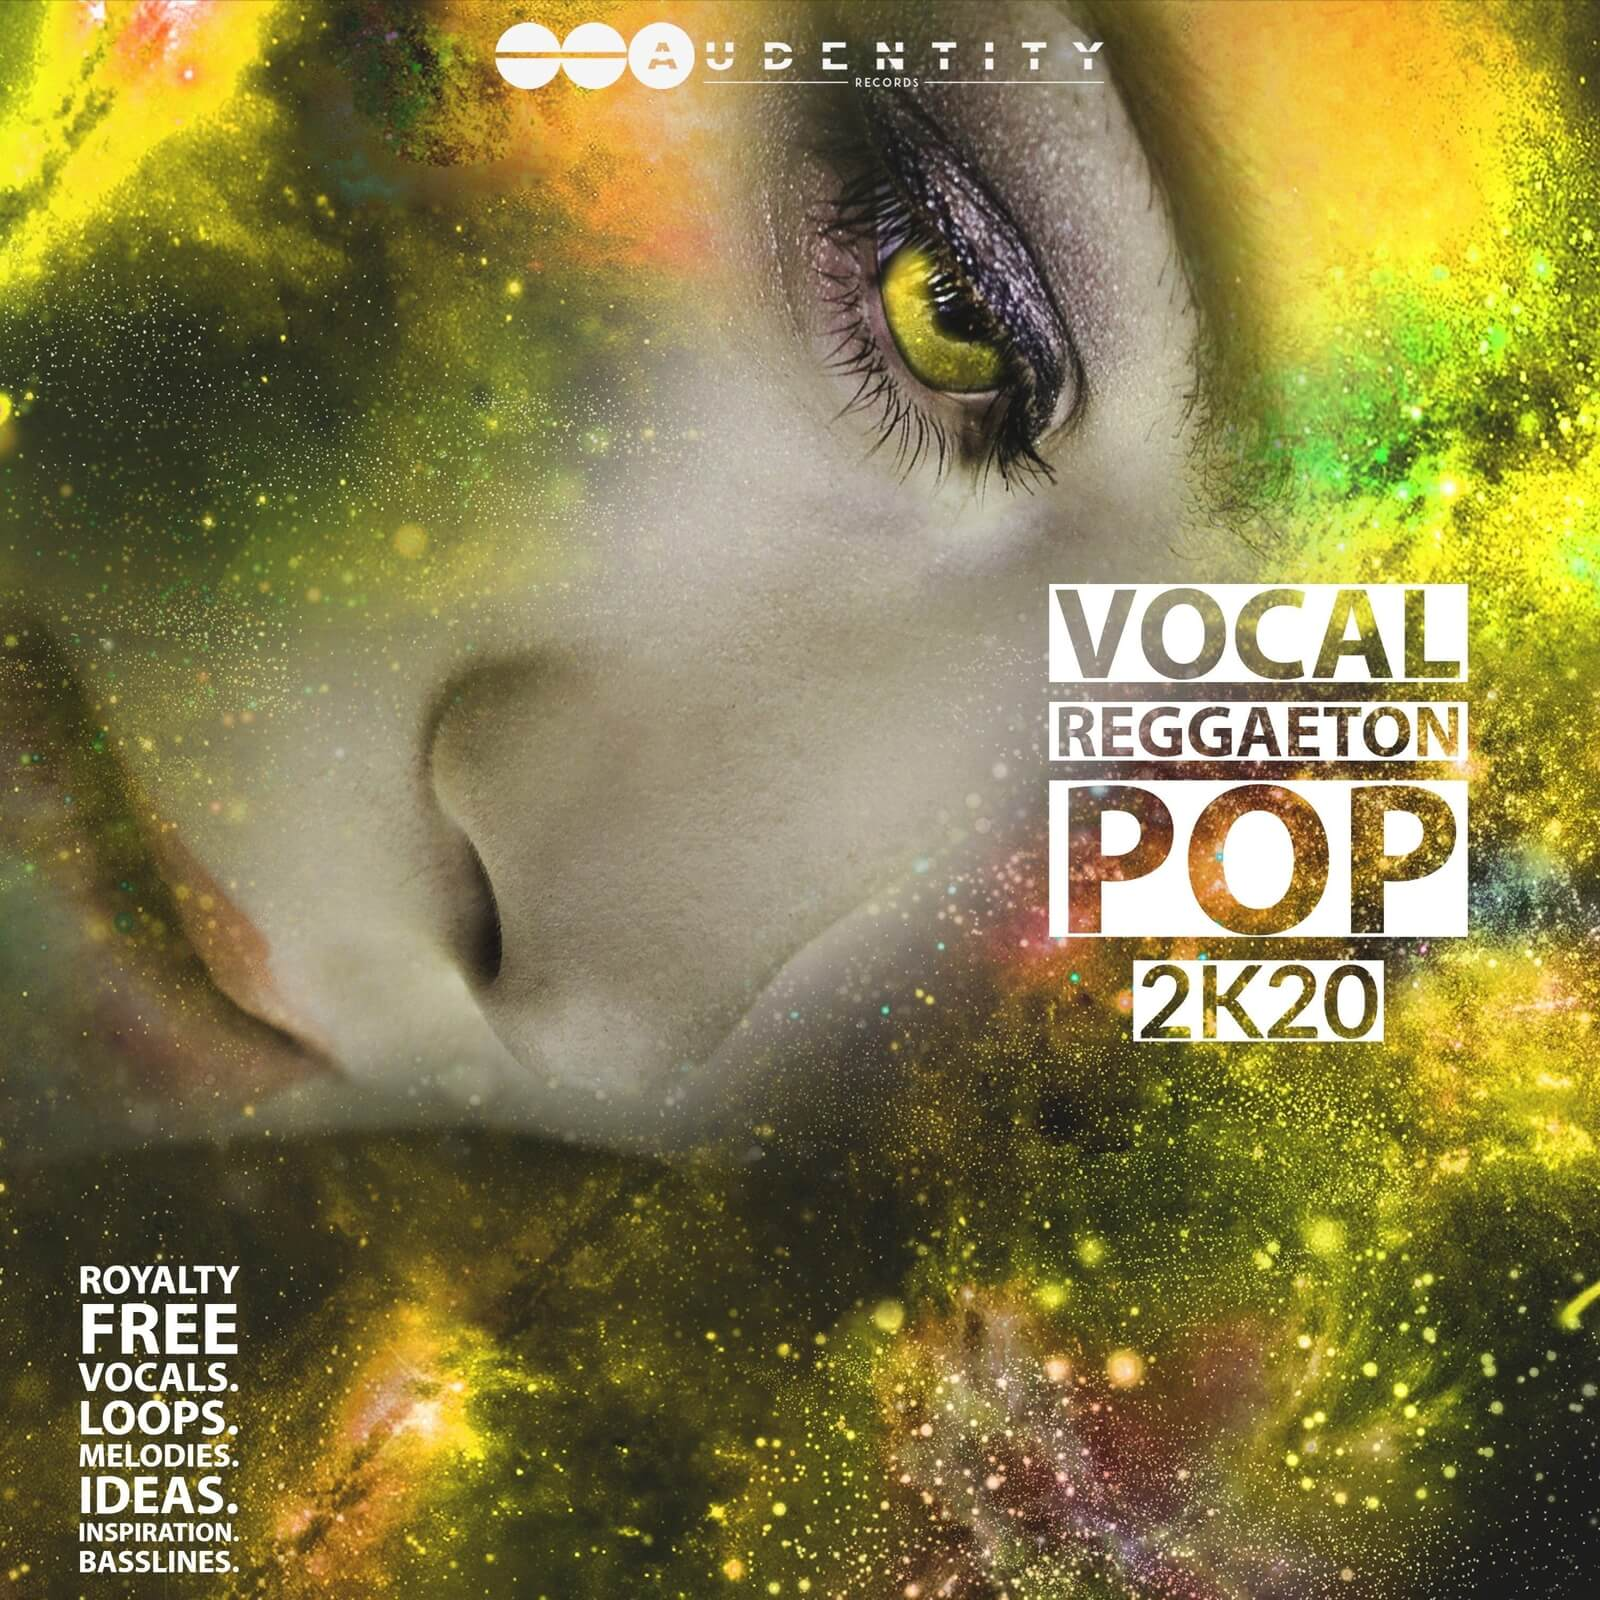 Audentity Records launches Vocal Reggaeton Pop 2K20 sample pack